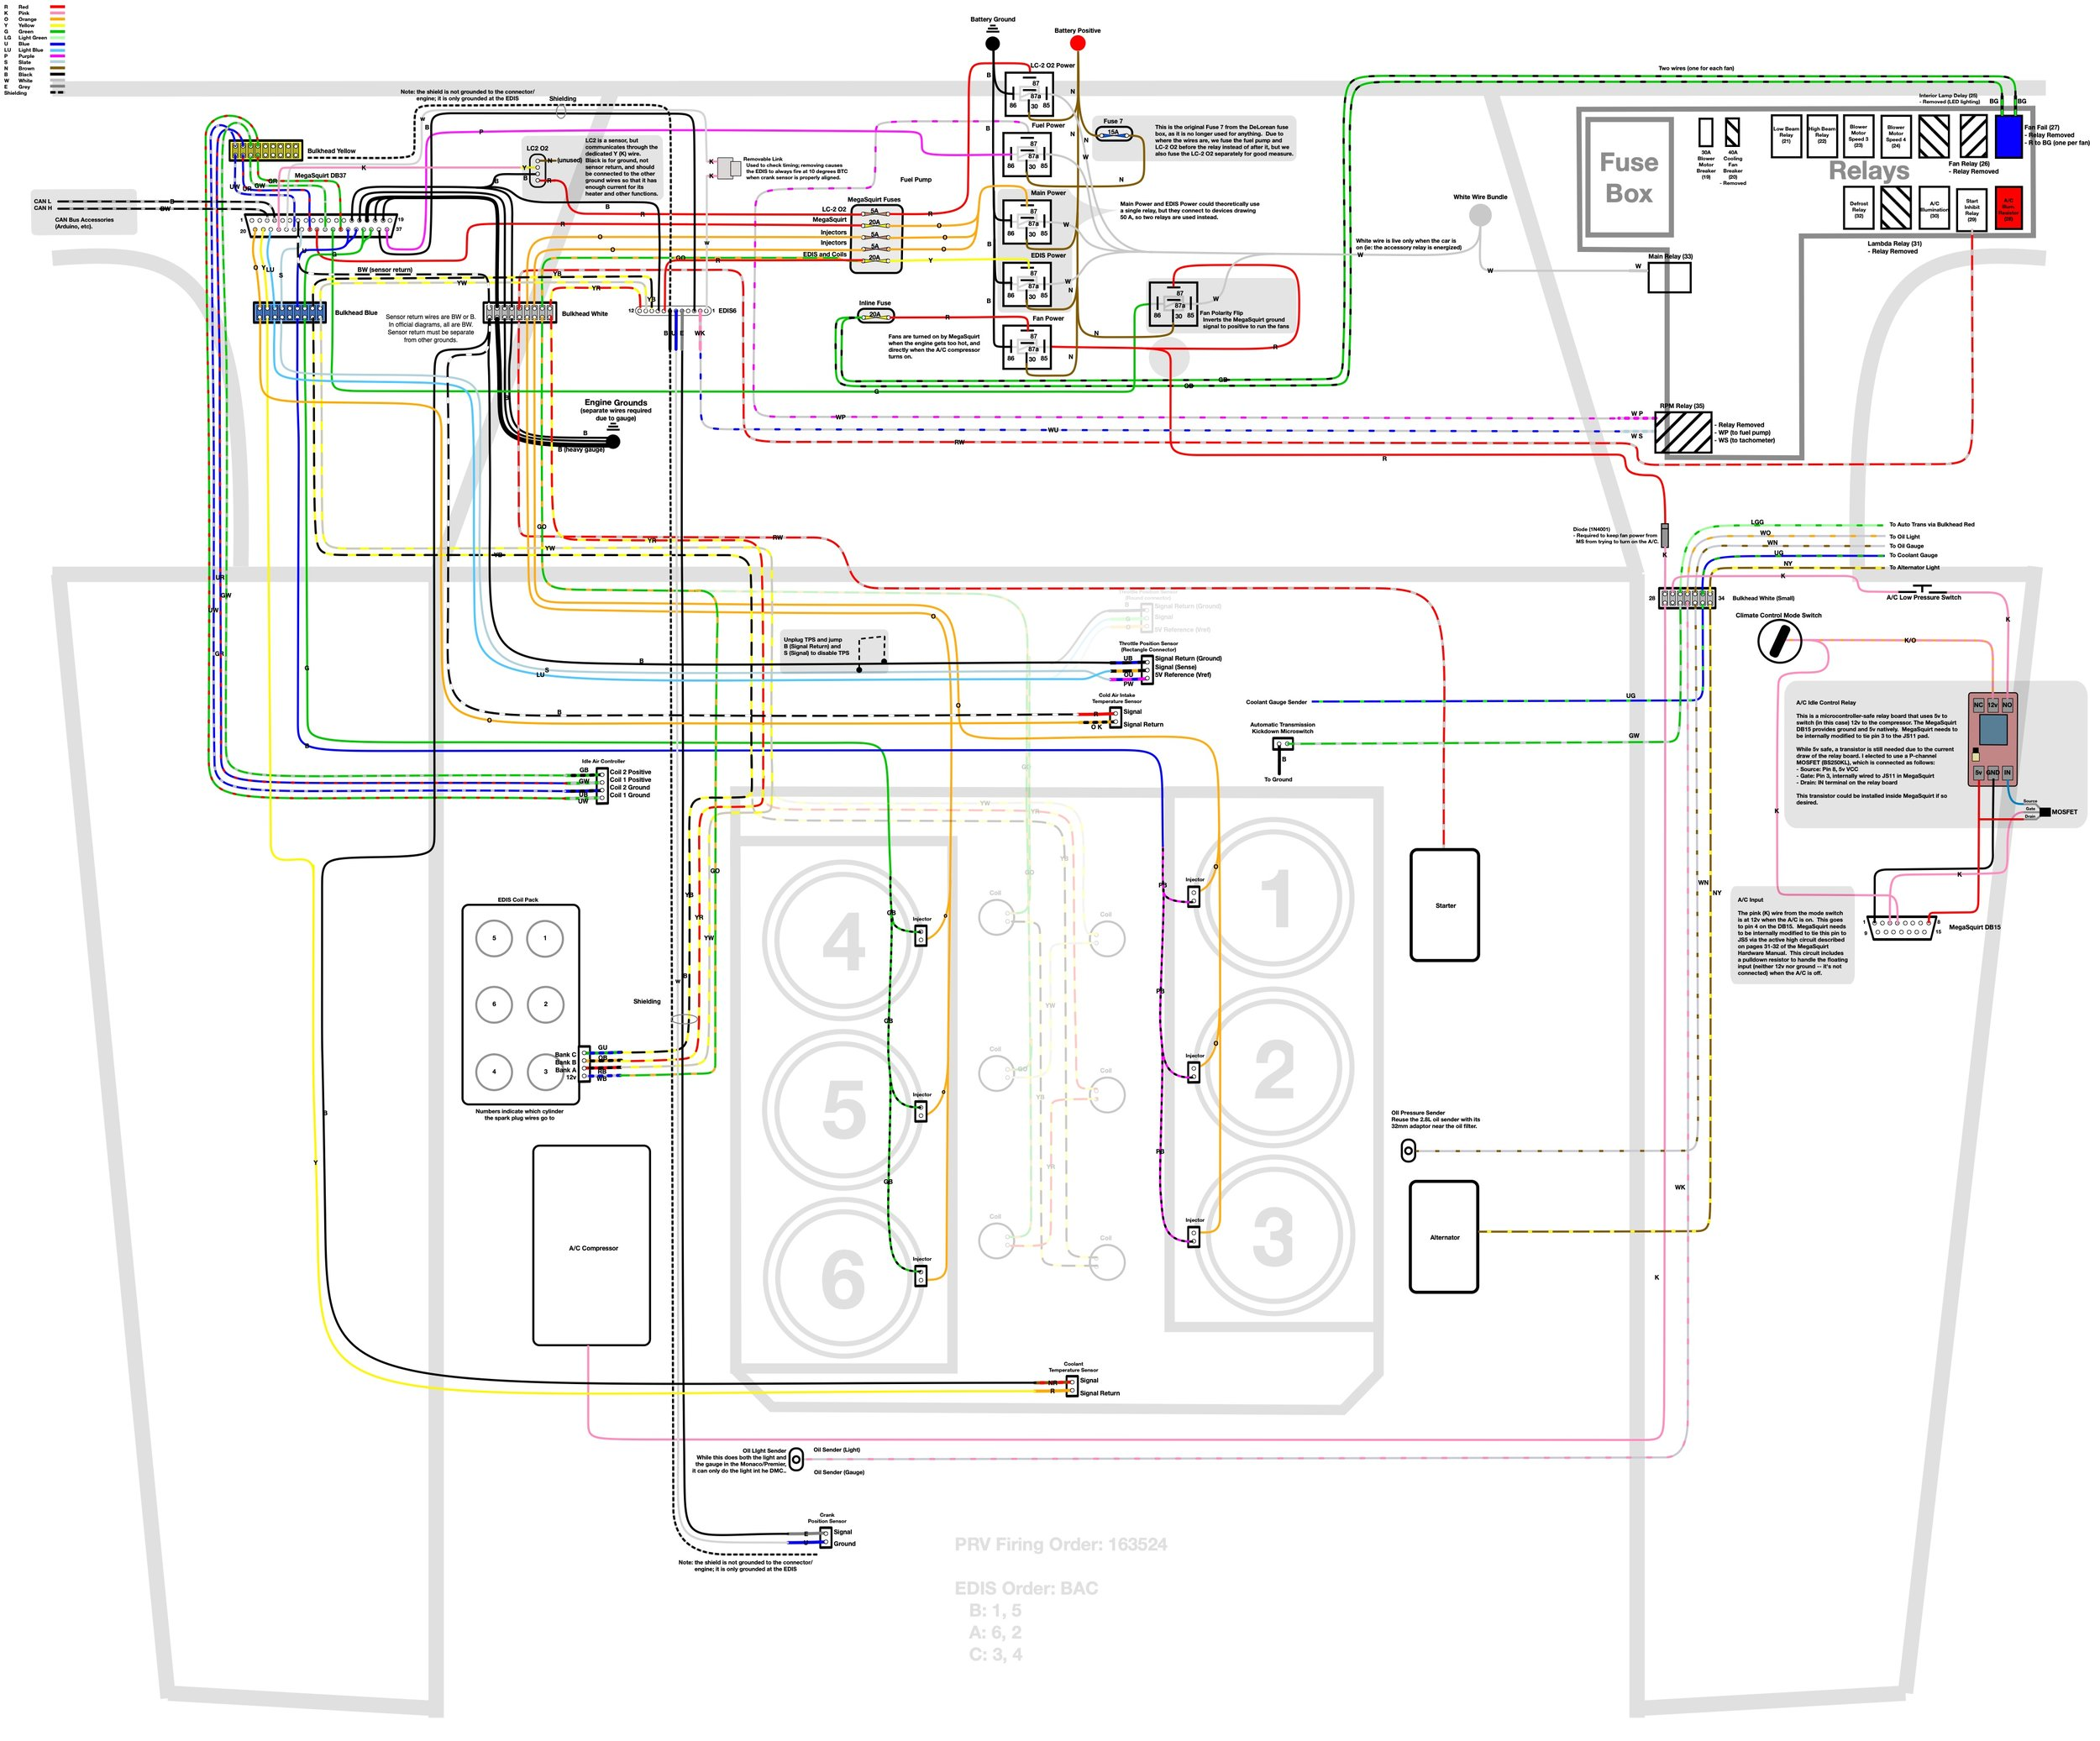 DeLorean+EFI+Wiring?format=1000w wiring, installing the new harness and fuel injector refurbishing amp research power step wiring diagram jeep at soozxer.org